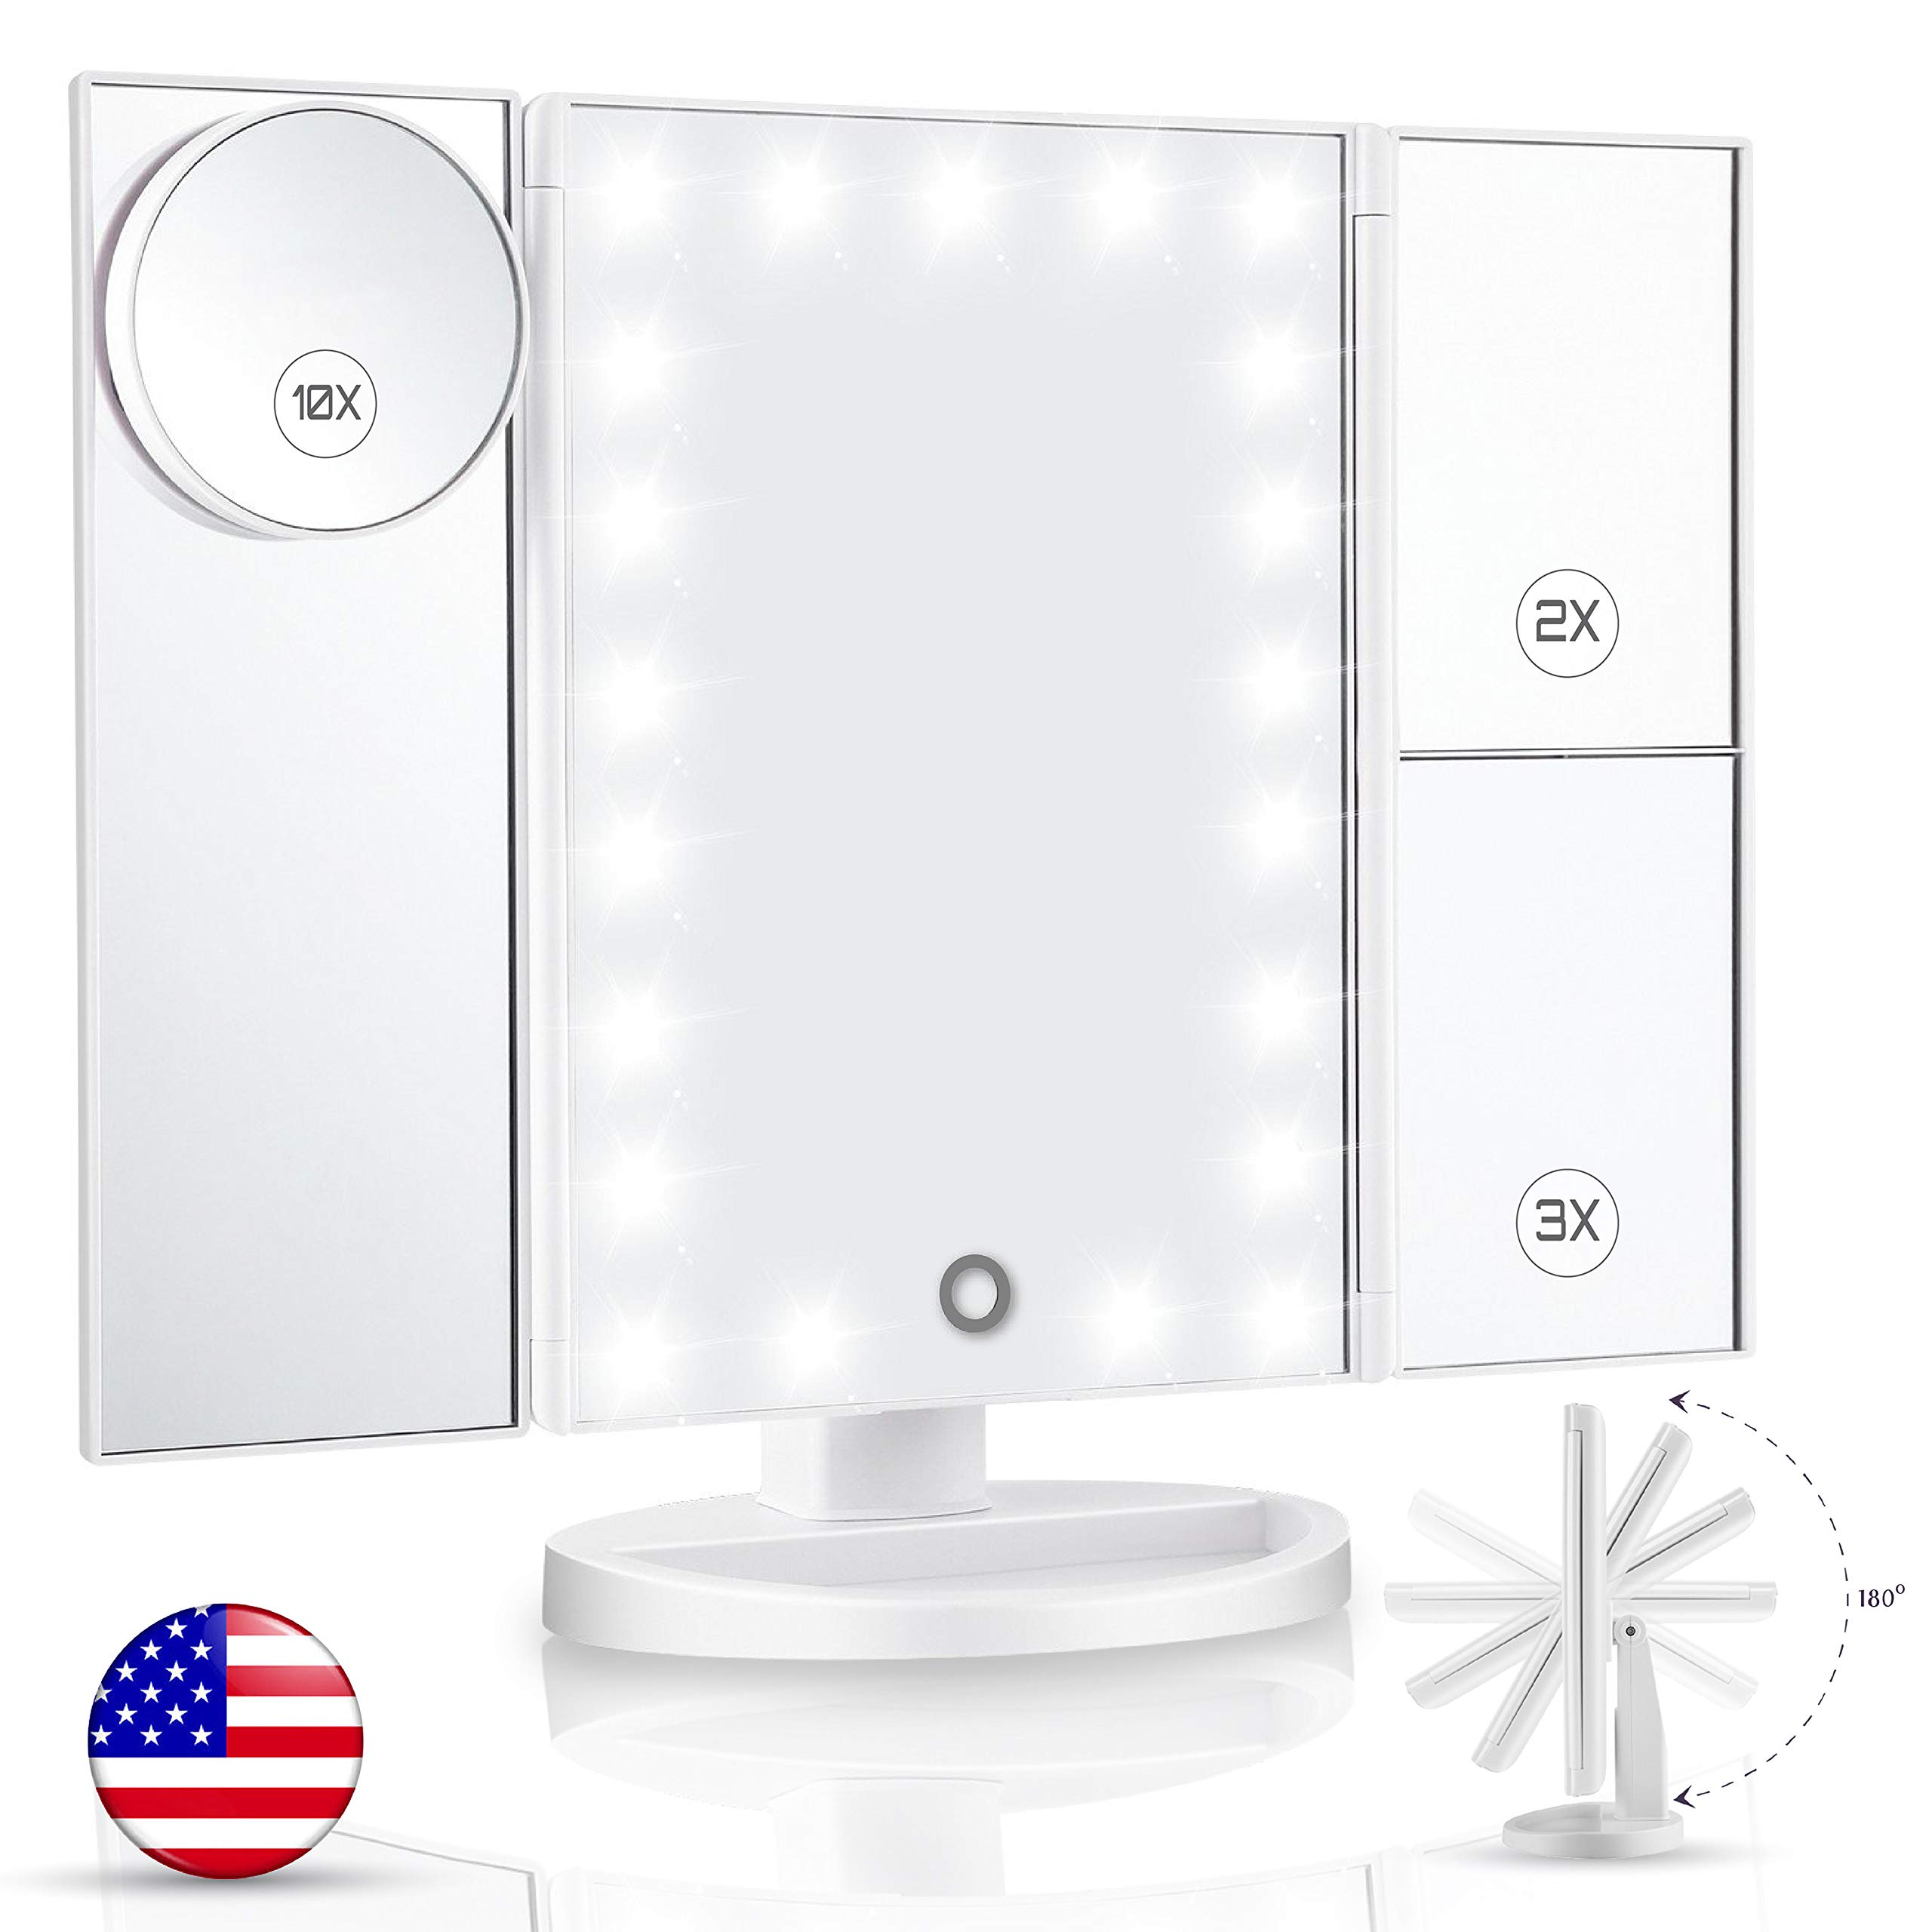 Vanity Mirror With Lights & Latest 21 Led Lighted Makeup Mirror - New 11x7.1x1\